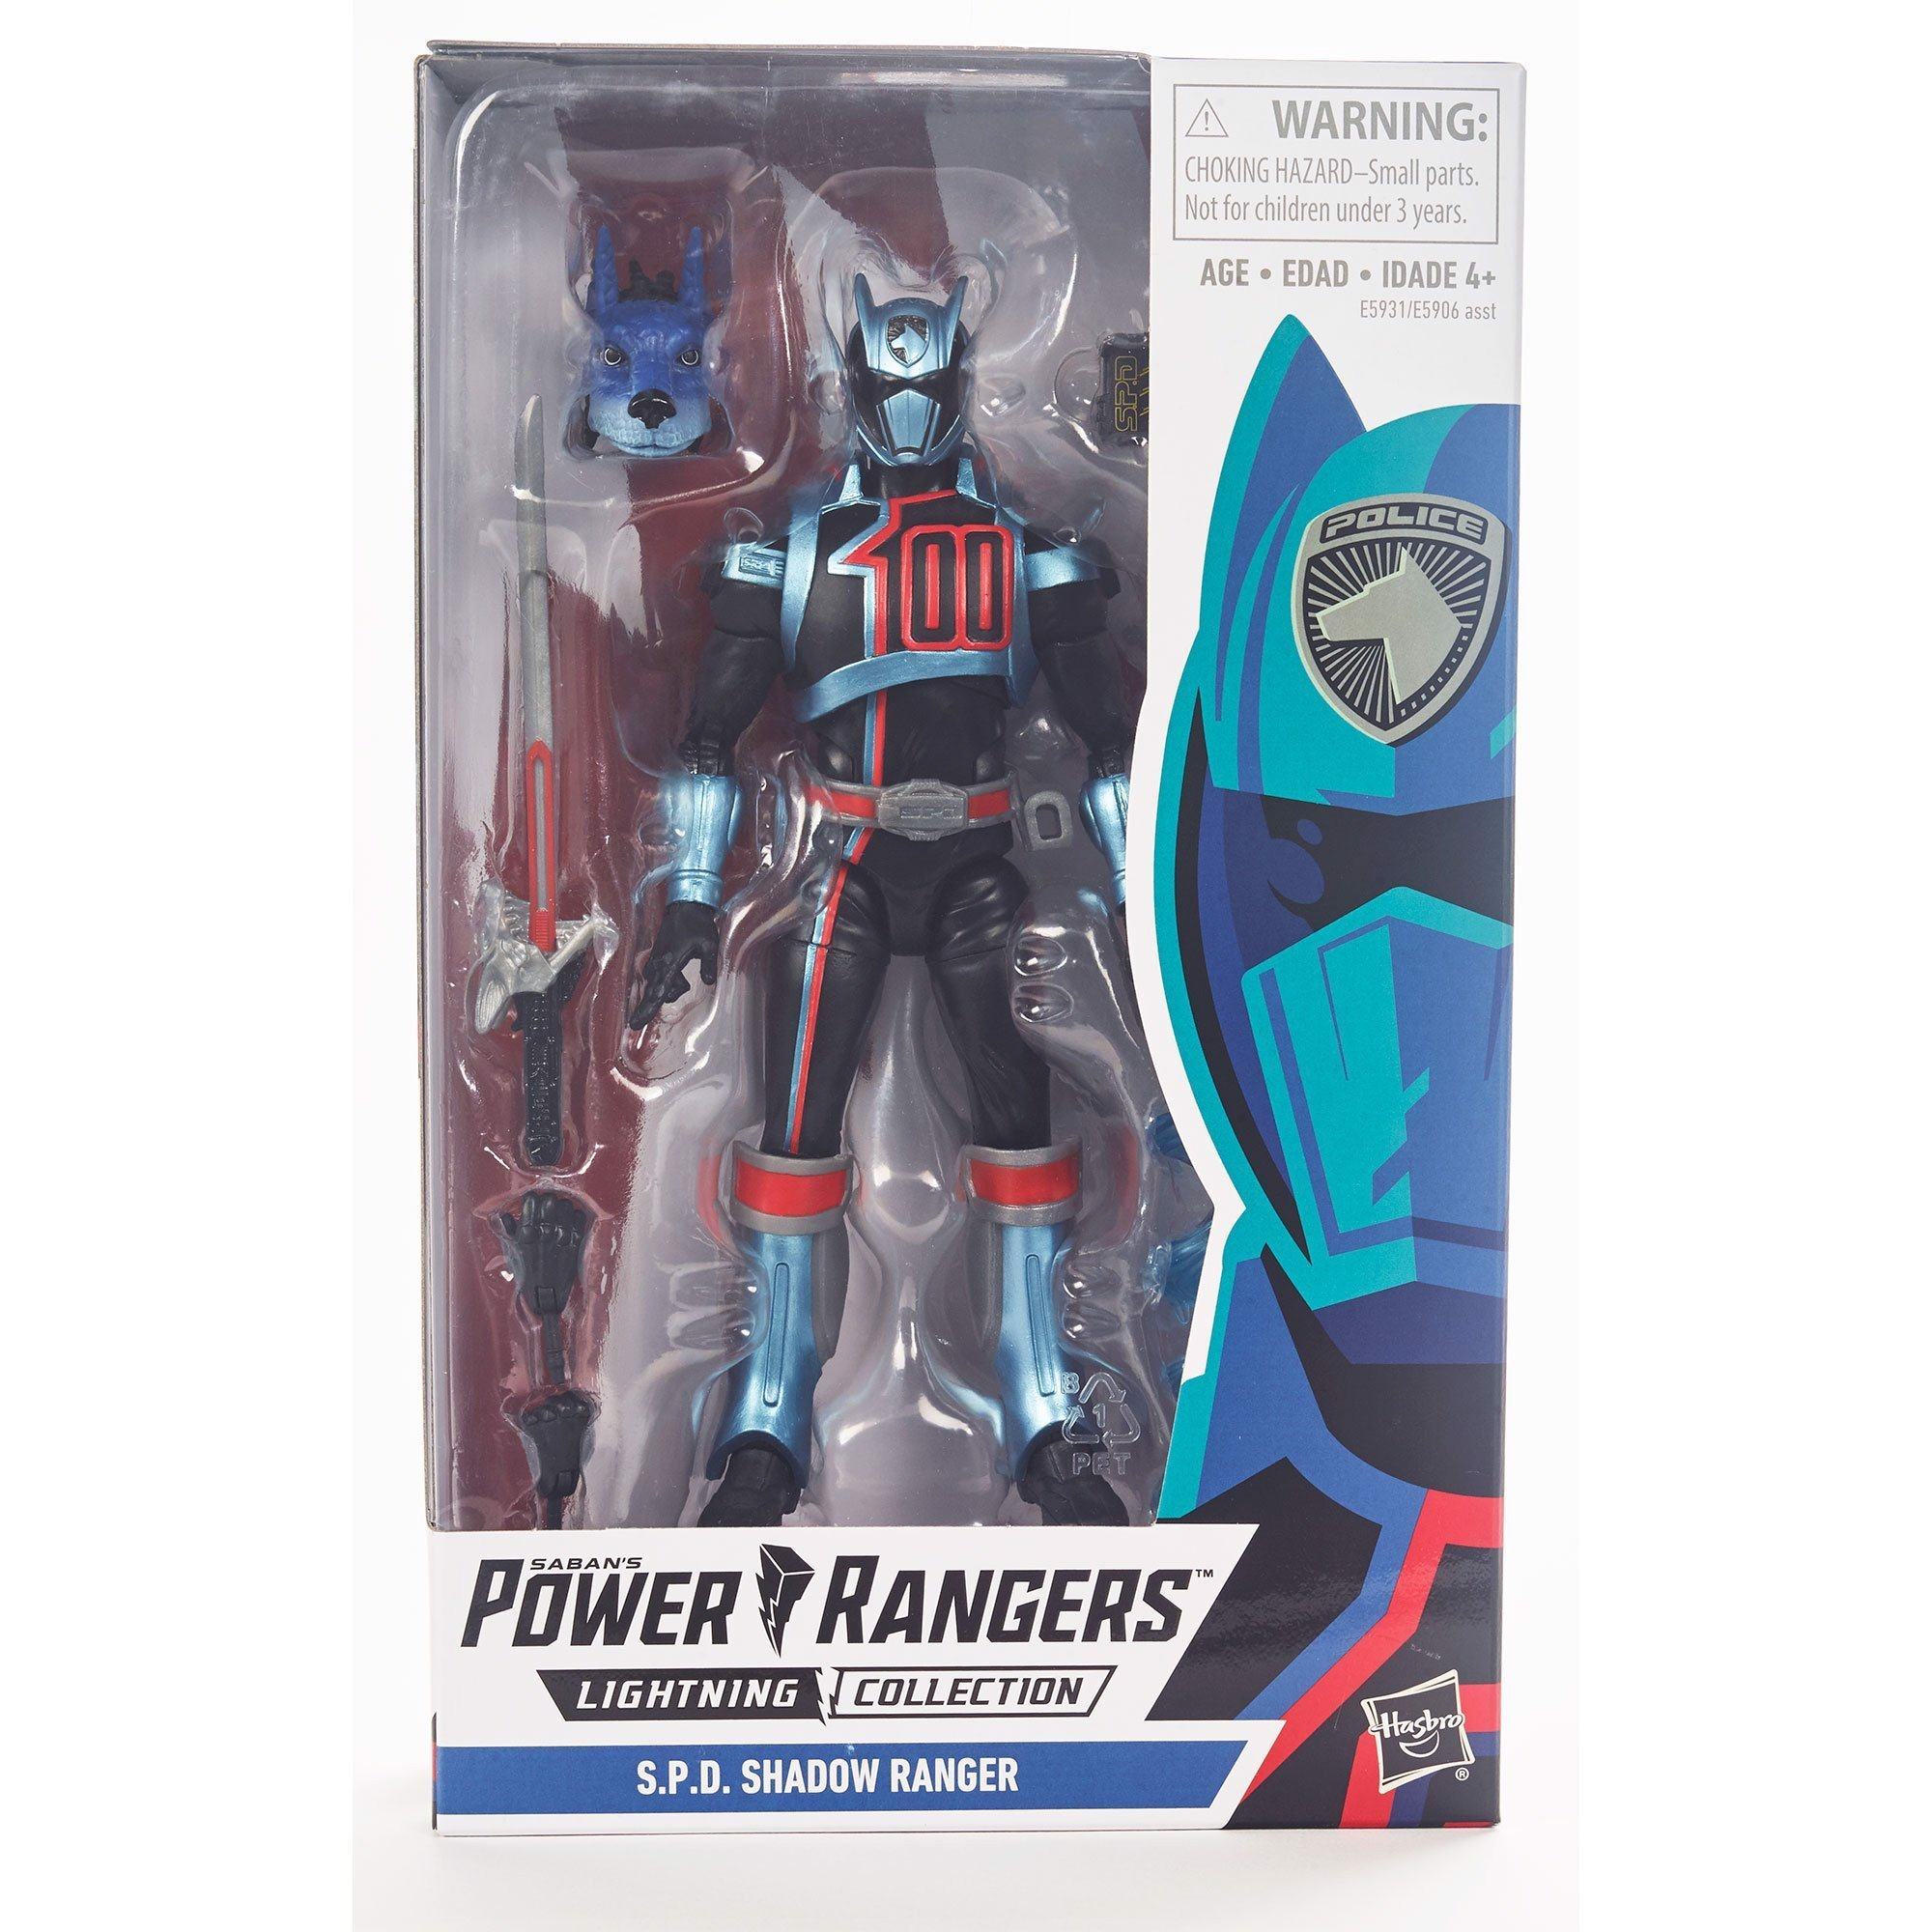 [ORDER LIÊN HỆ 0907414041] Hasbro Power Rangers Lightning Collection 6-Inch S.P.D. Shadow Ranger Collectible Action Figure